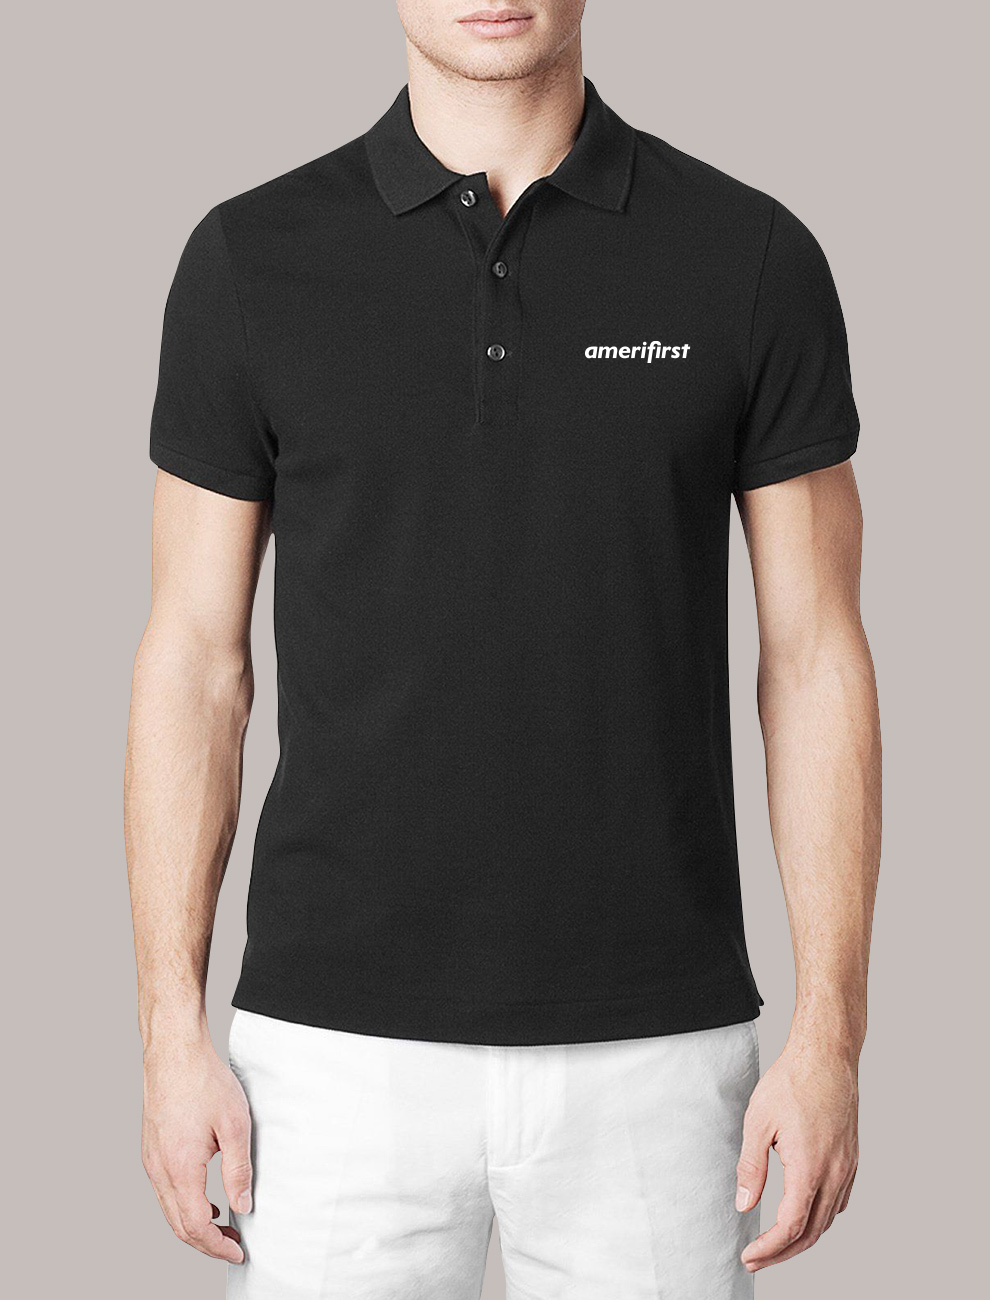 Amerifirst black polo shirt and logo.